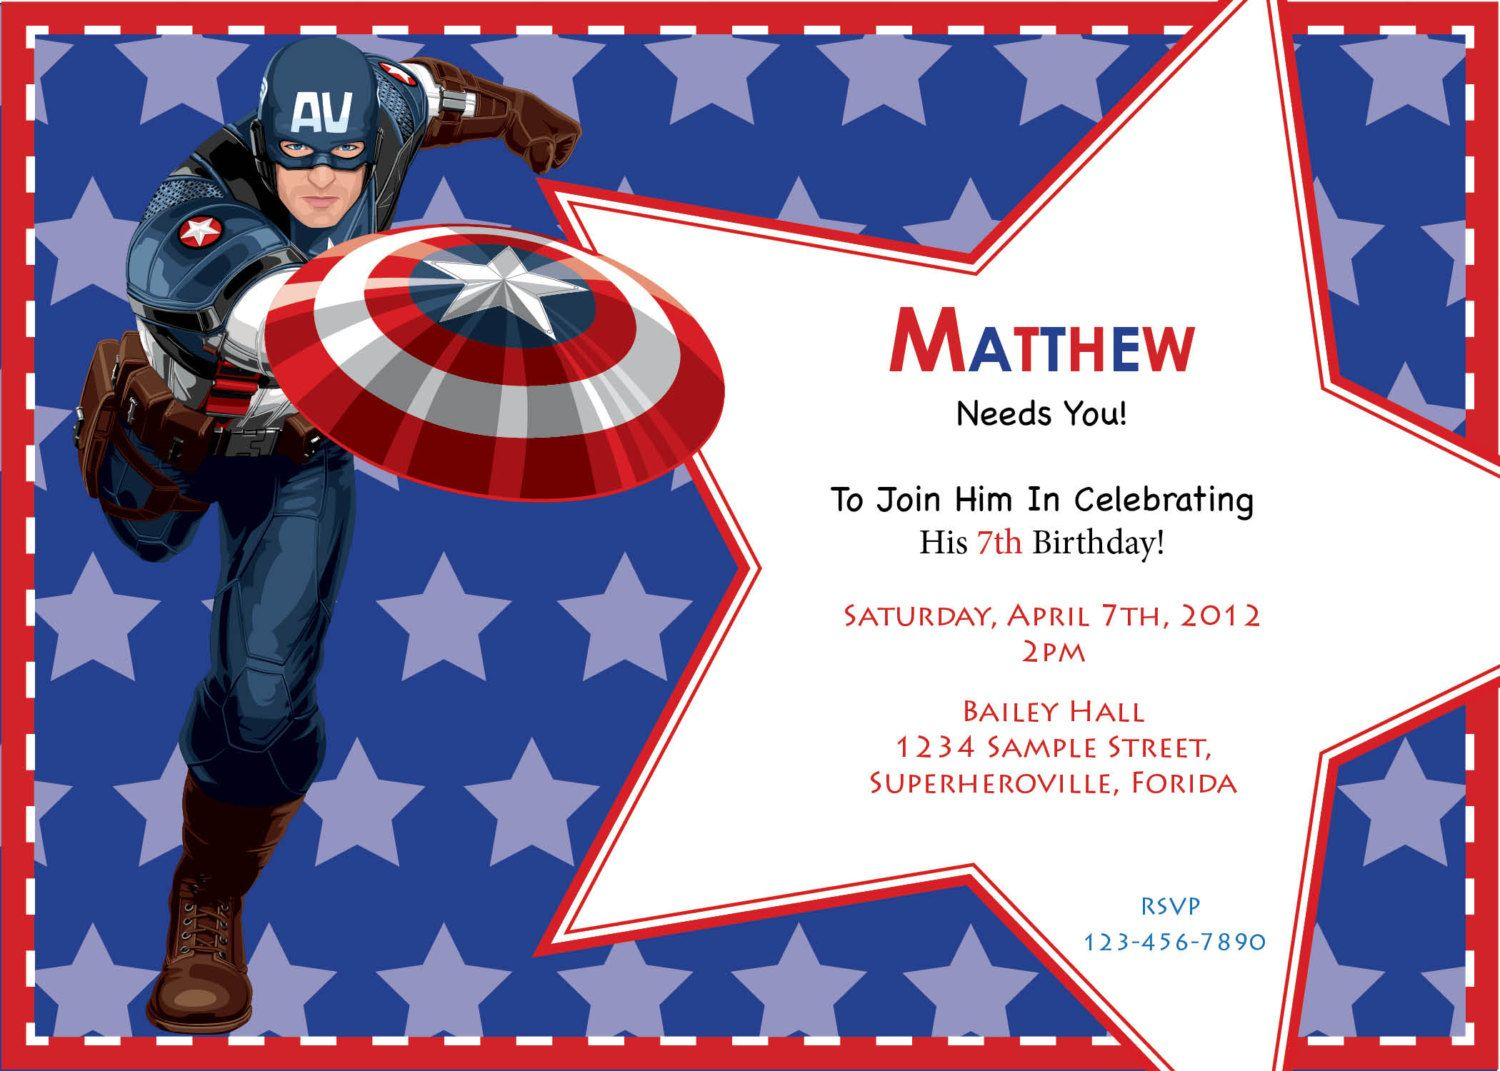 Captain America Free Printable Invitations, Cards or Images ...